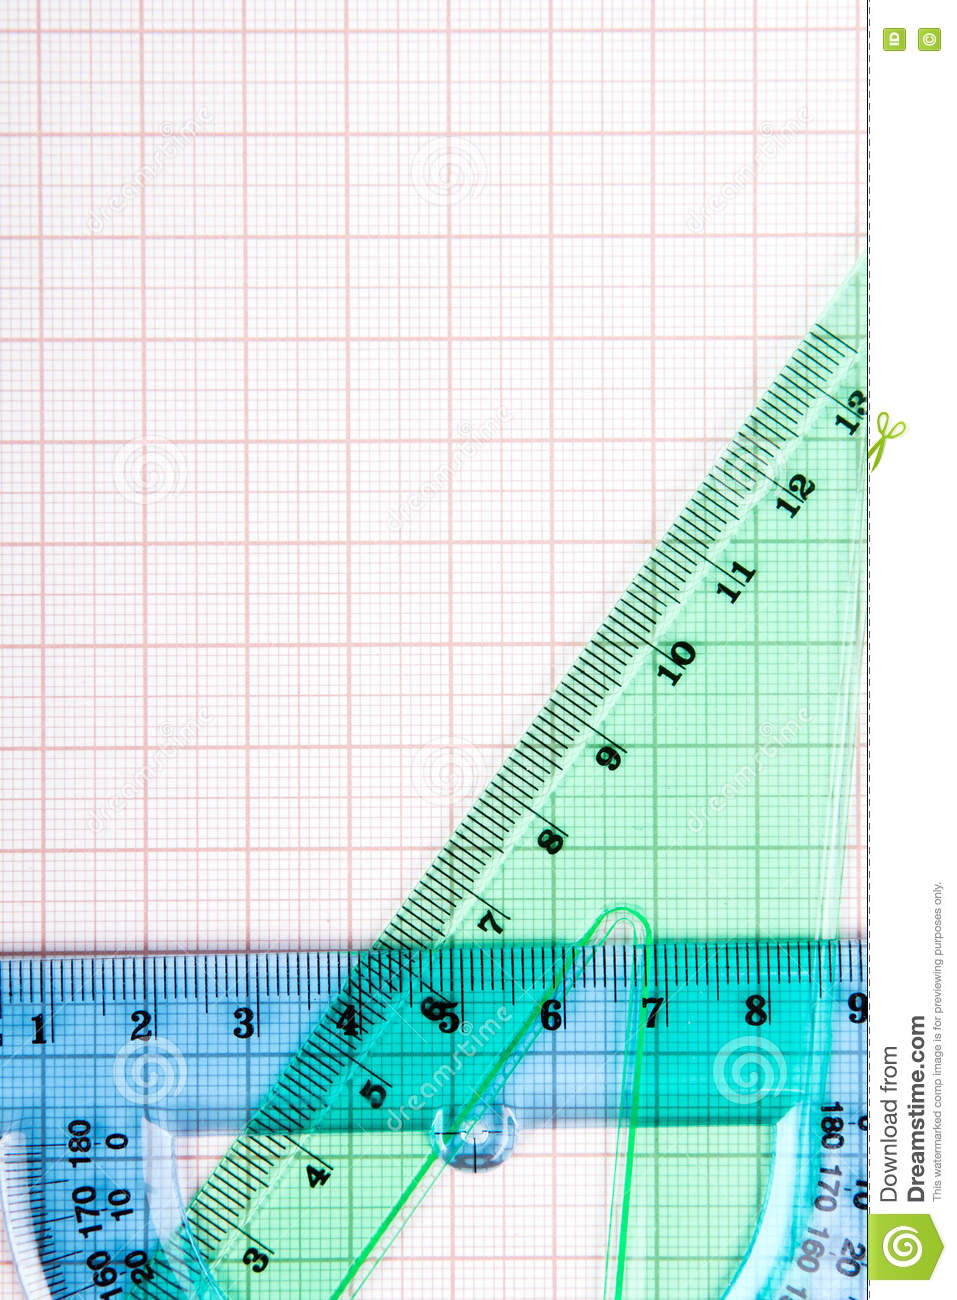 drawing tools on graph paper stock image image of graph blank